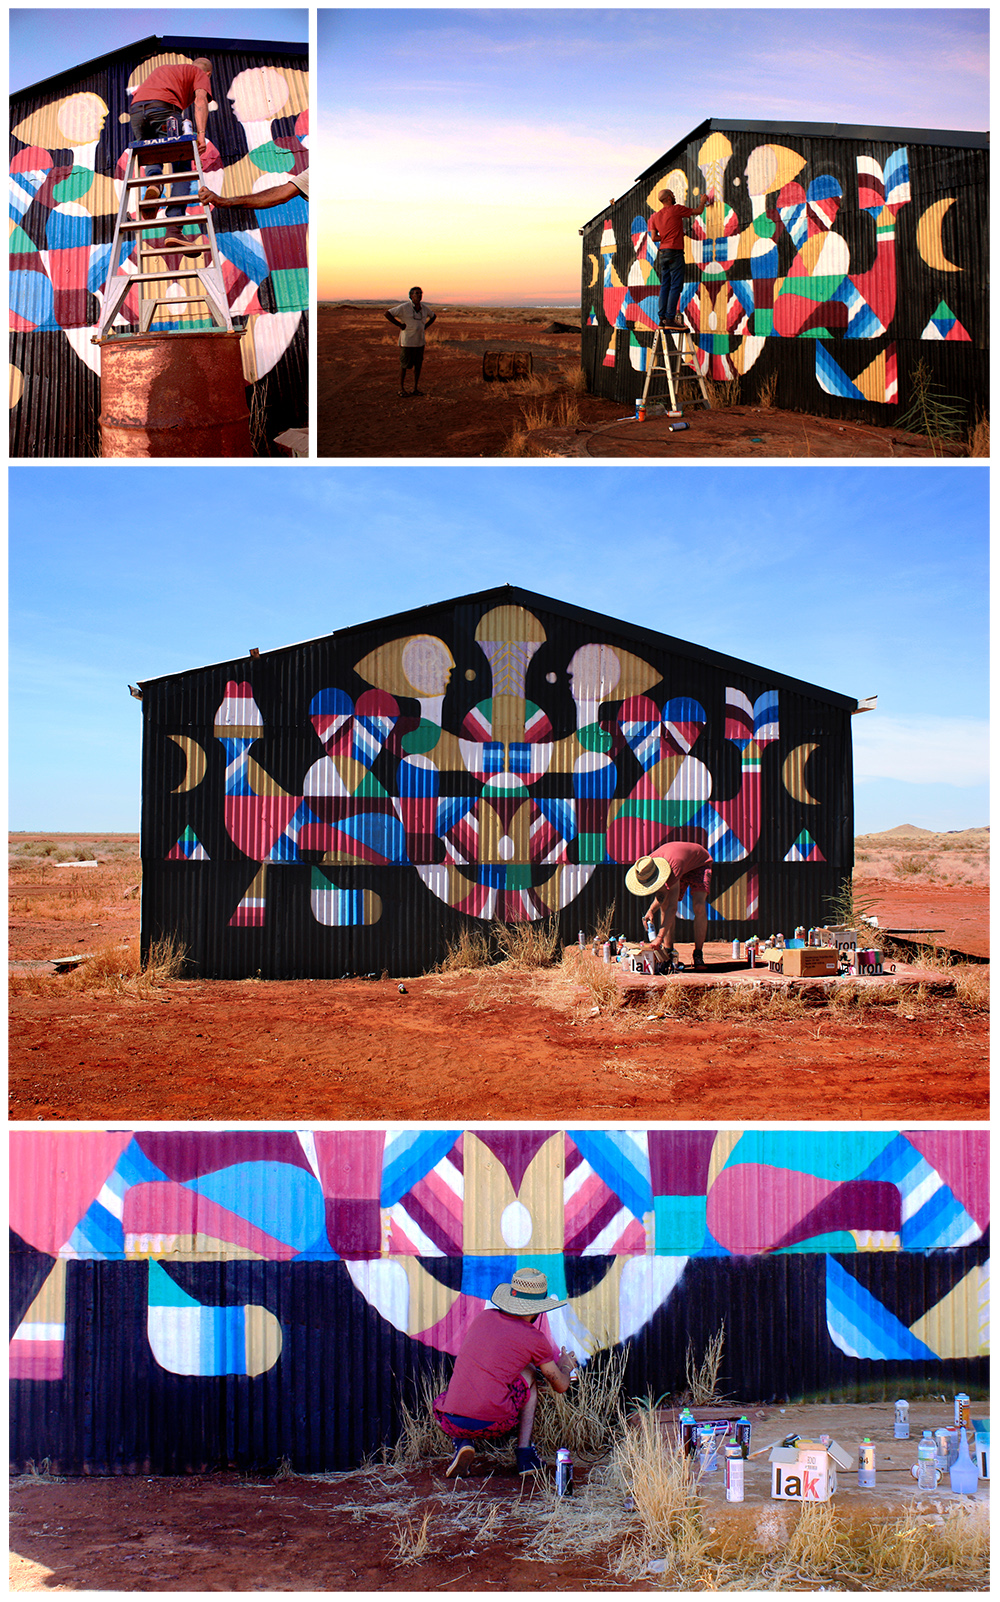 MANI GURI MINGALA. Work in progress. PILBARA. Australia.